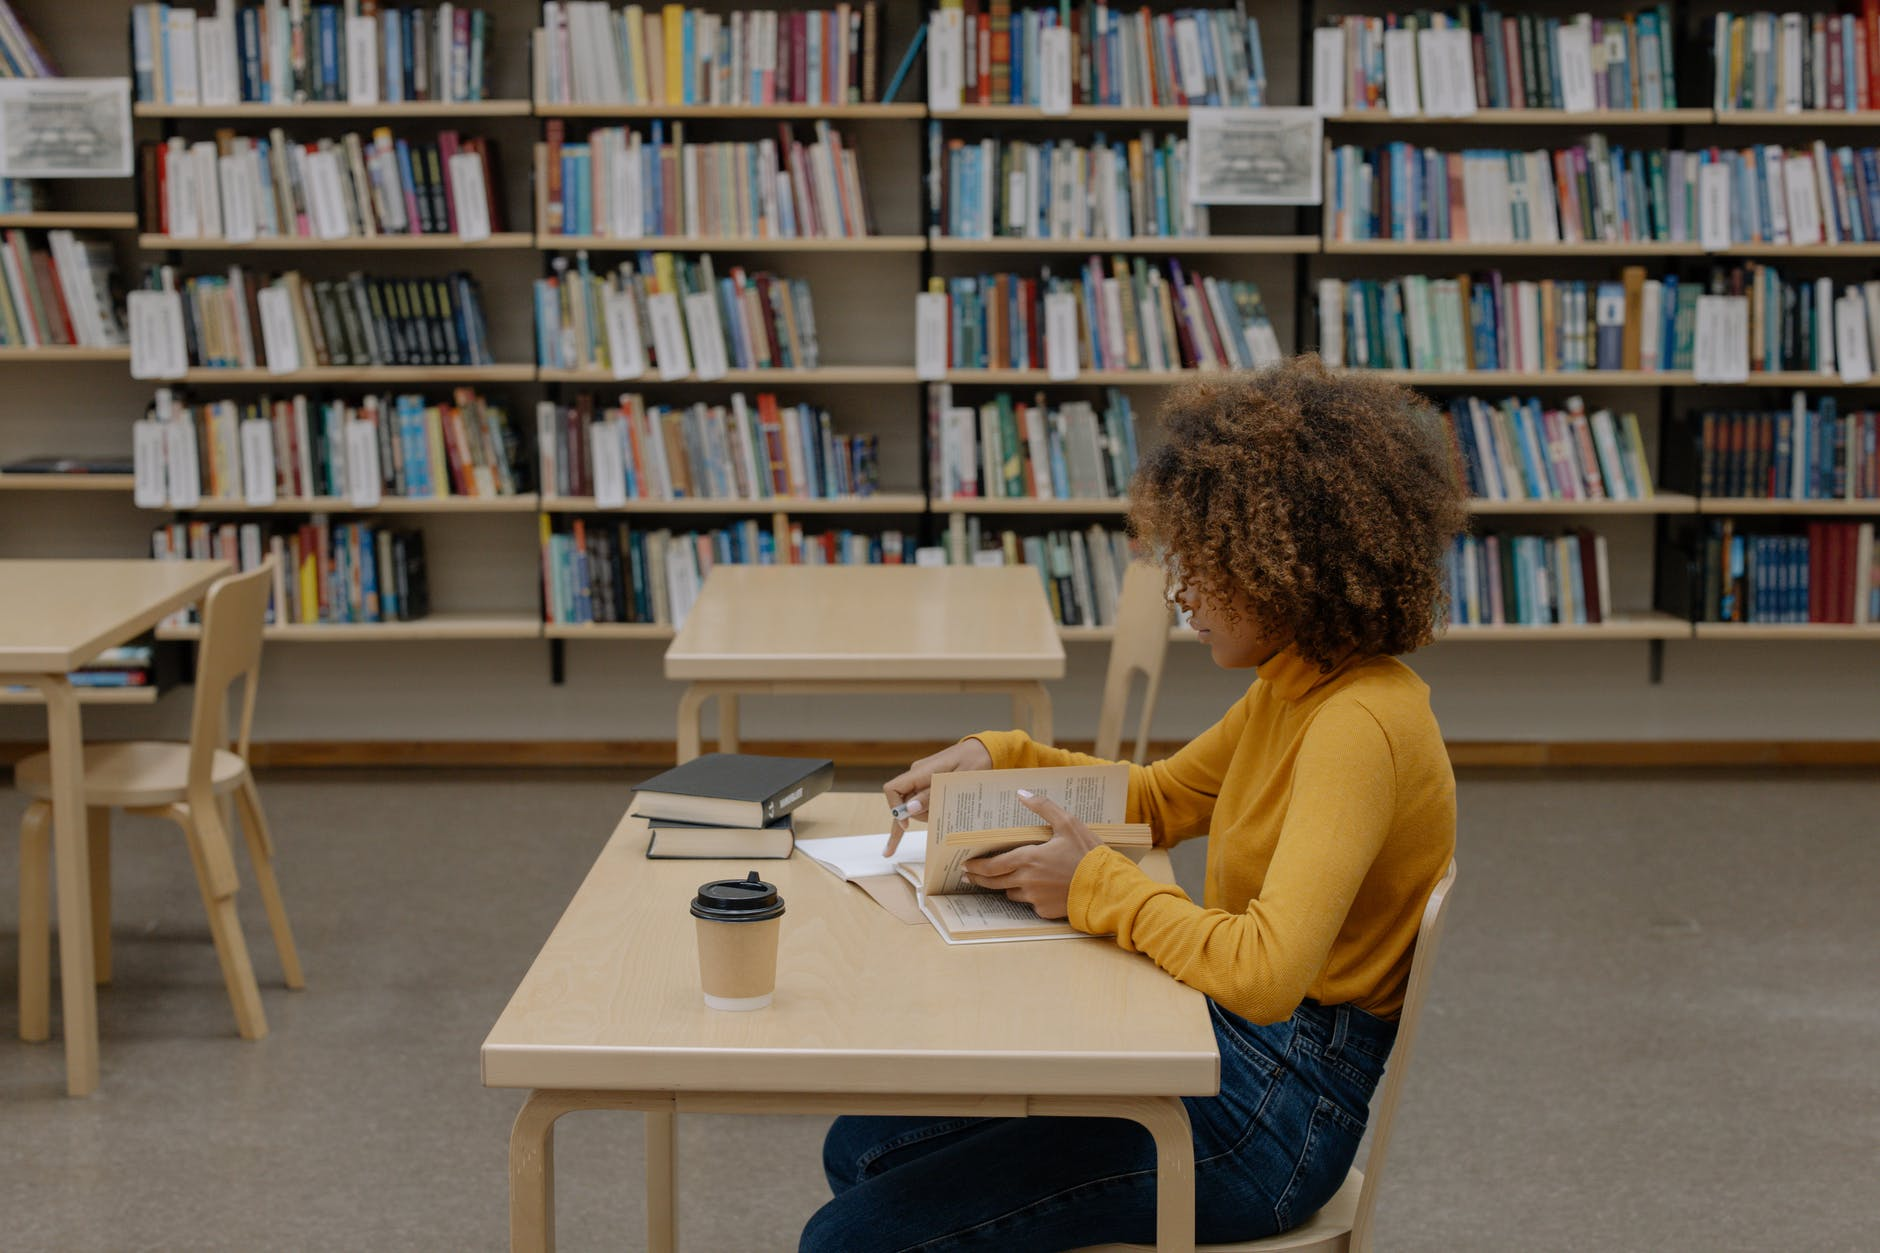 Young person studying at a desk, in a library